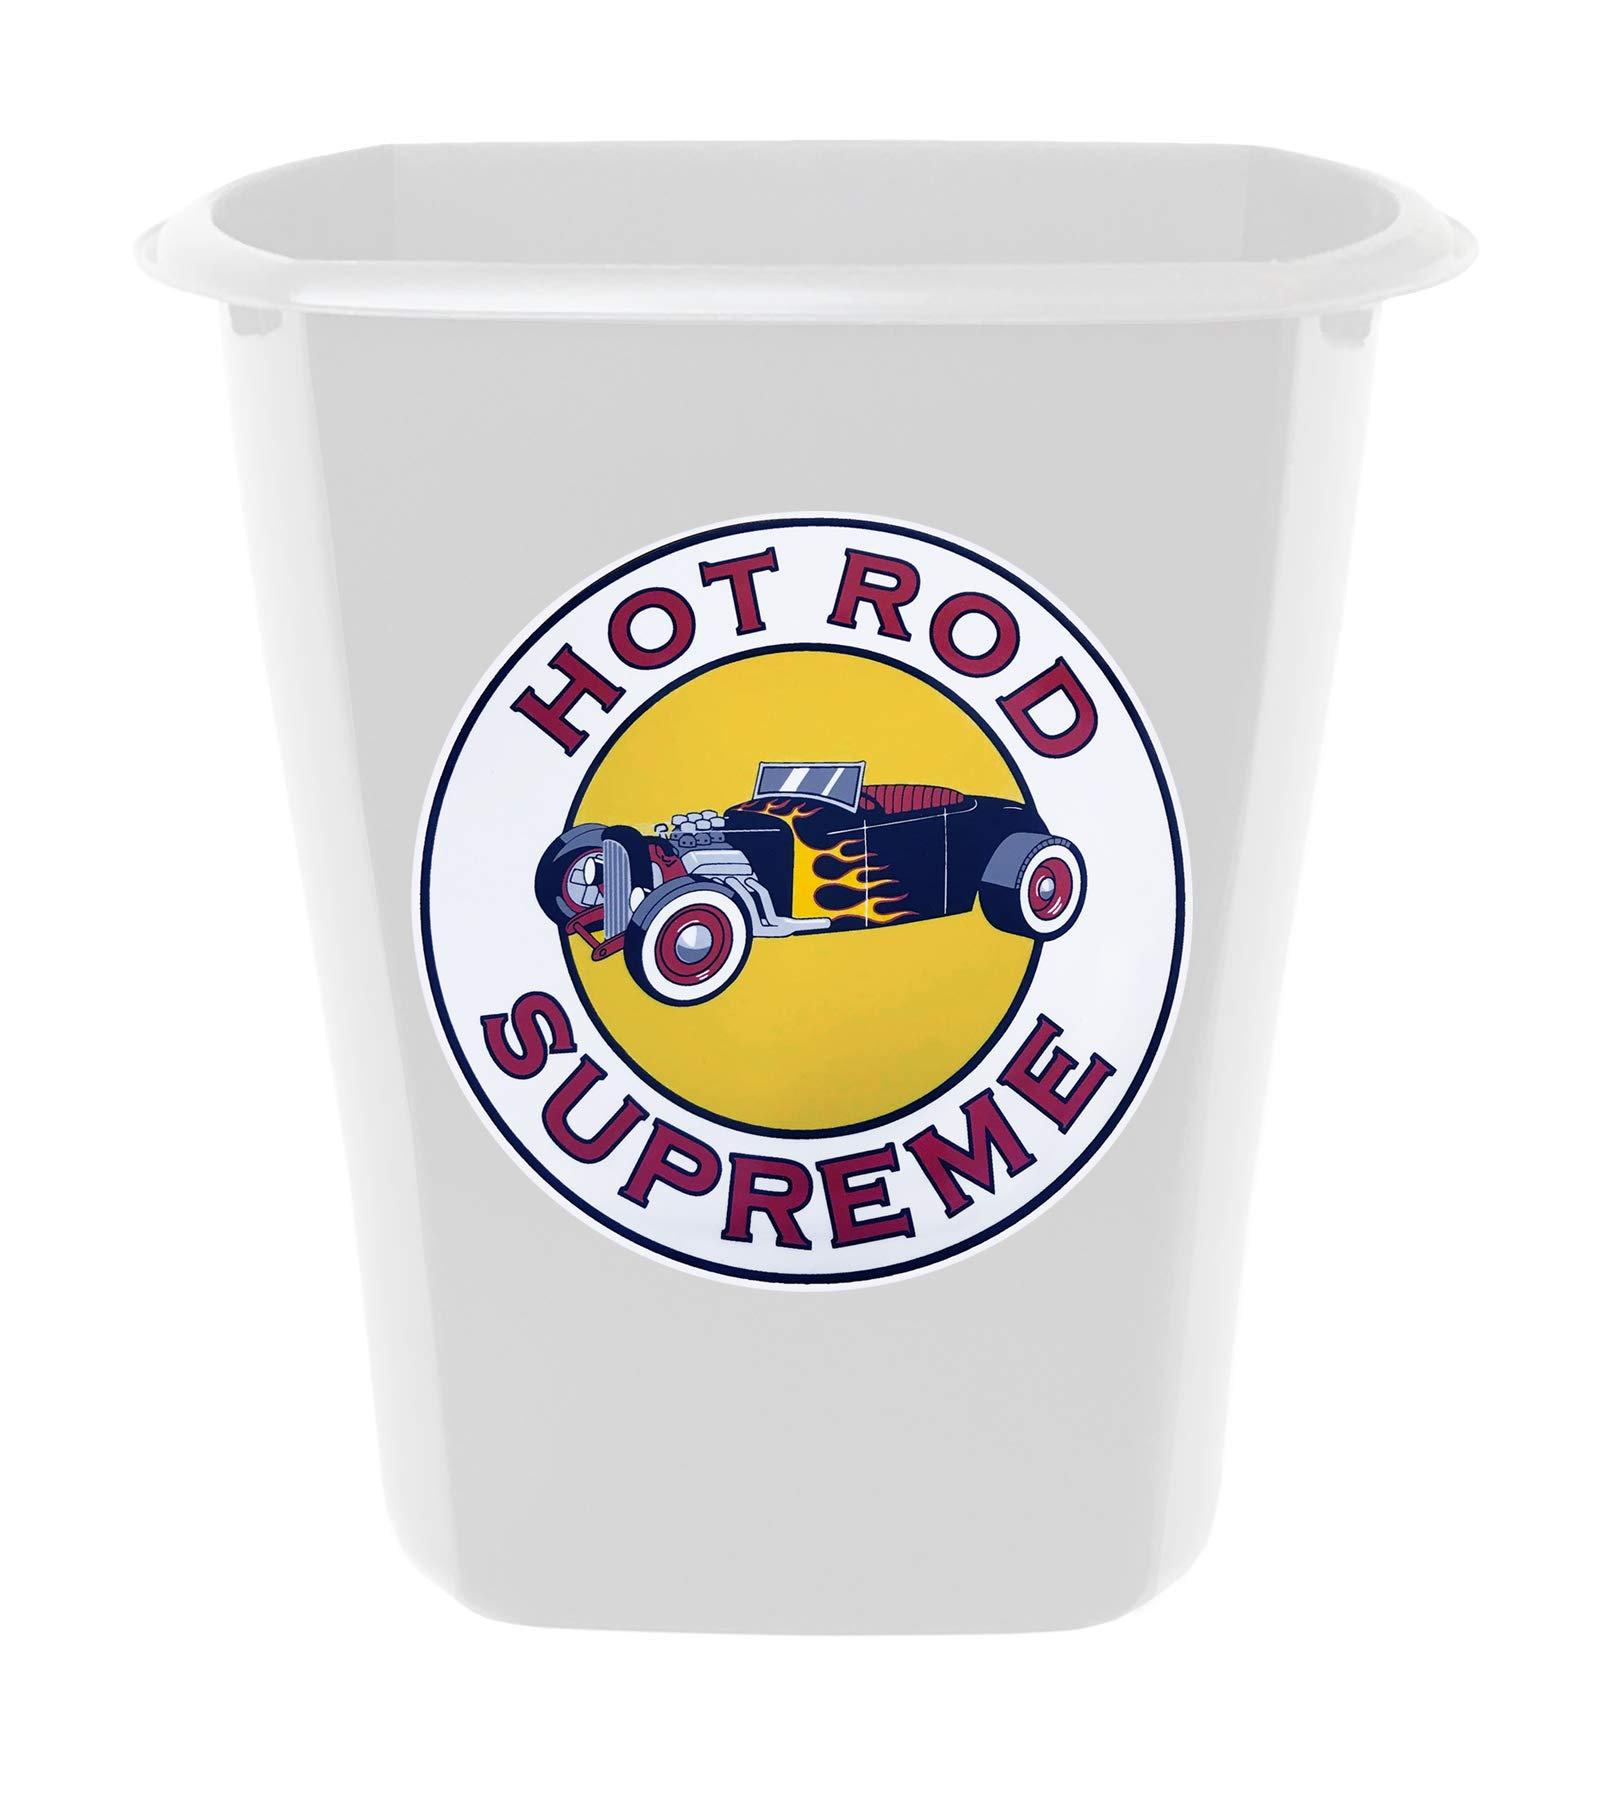 The Furniture Cove 3 Gallon White Plastic Wastebasket Trash Can for the Bathroom or Game Room Featuring the Choice of Your Favorite Vintage Gas Theme Logo Decal (Hot Rod Supreme)